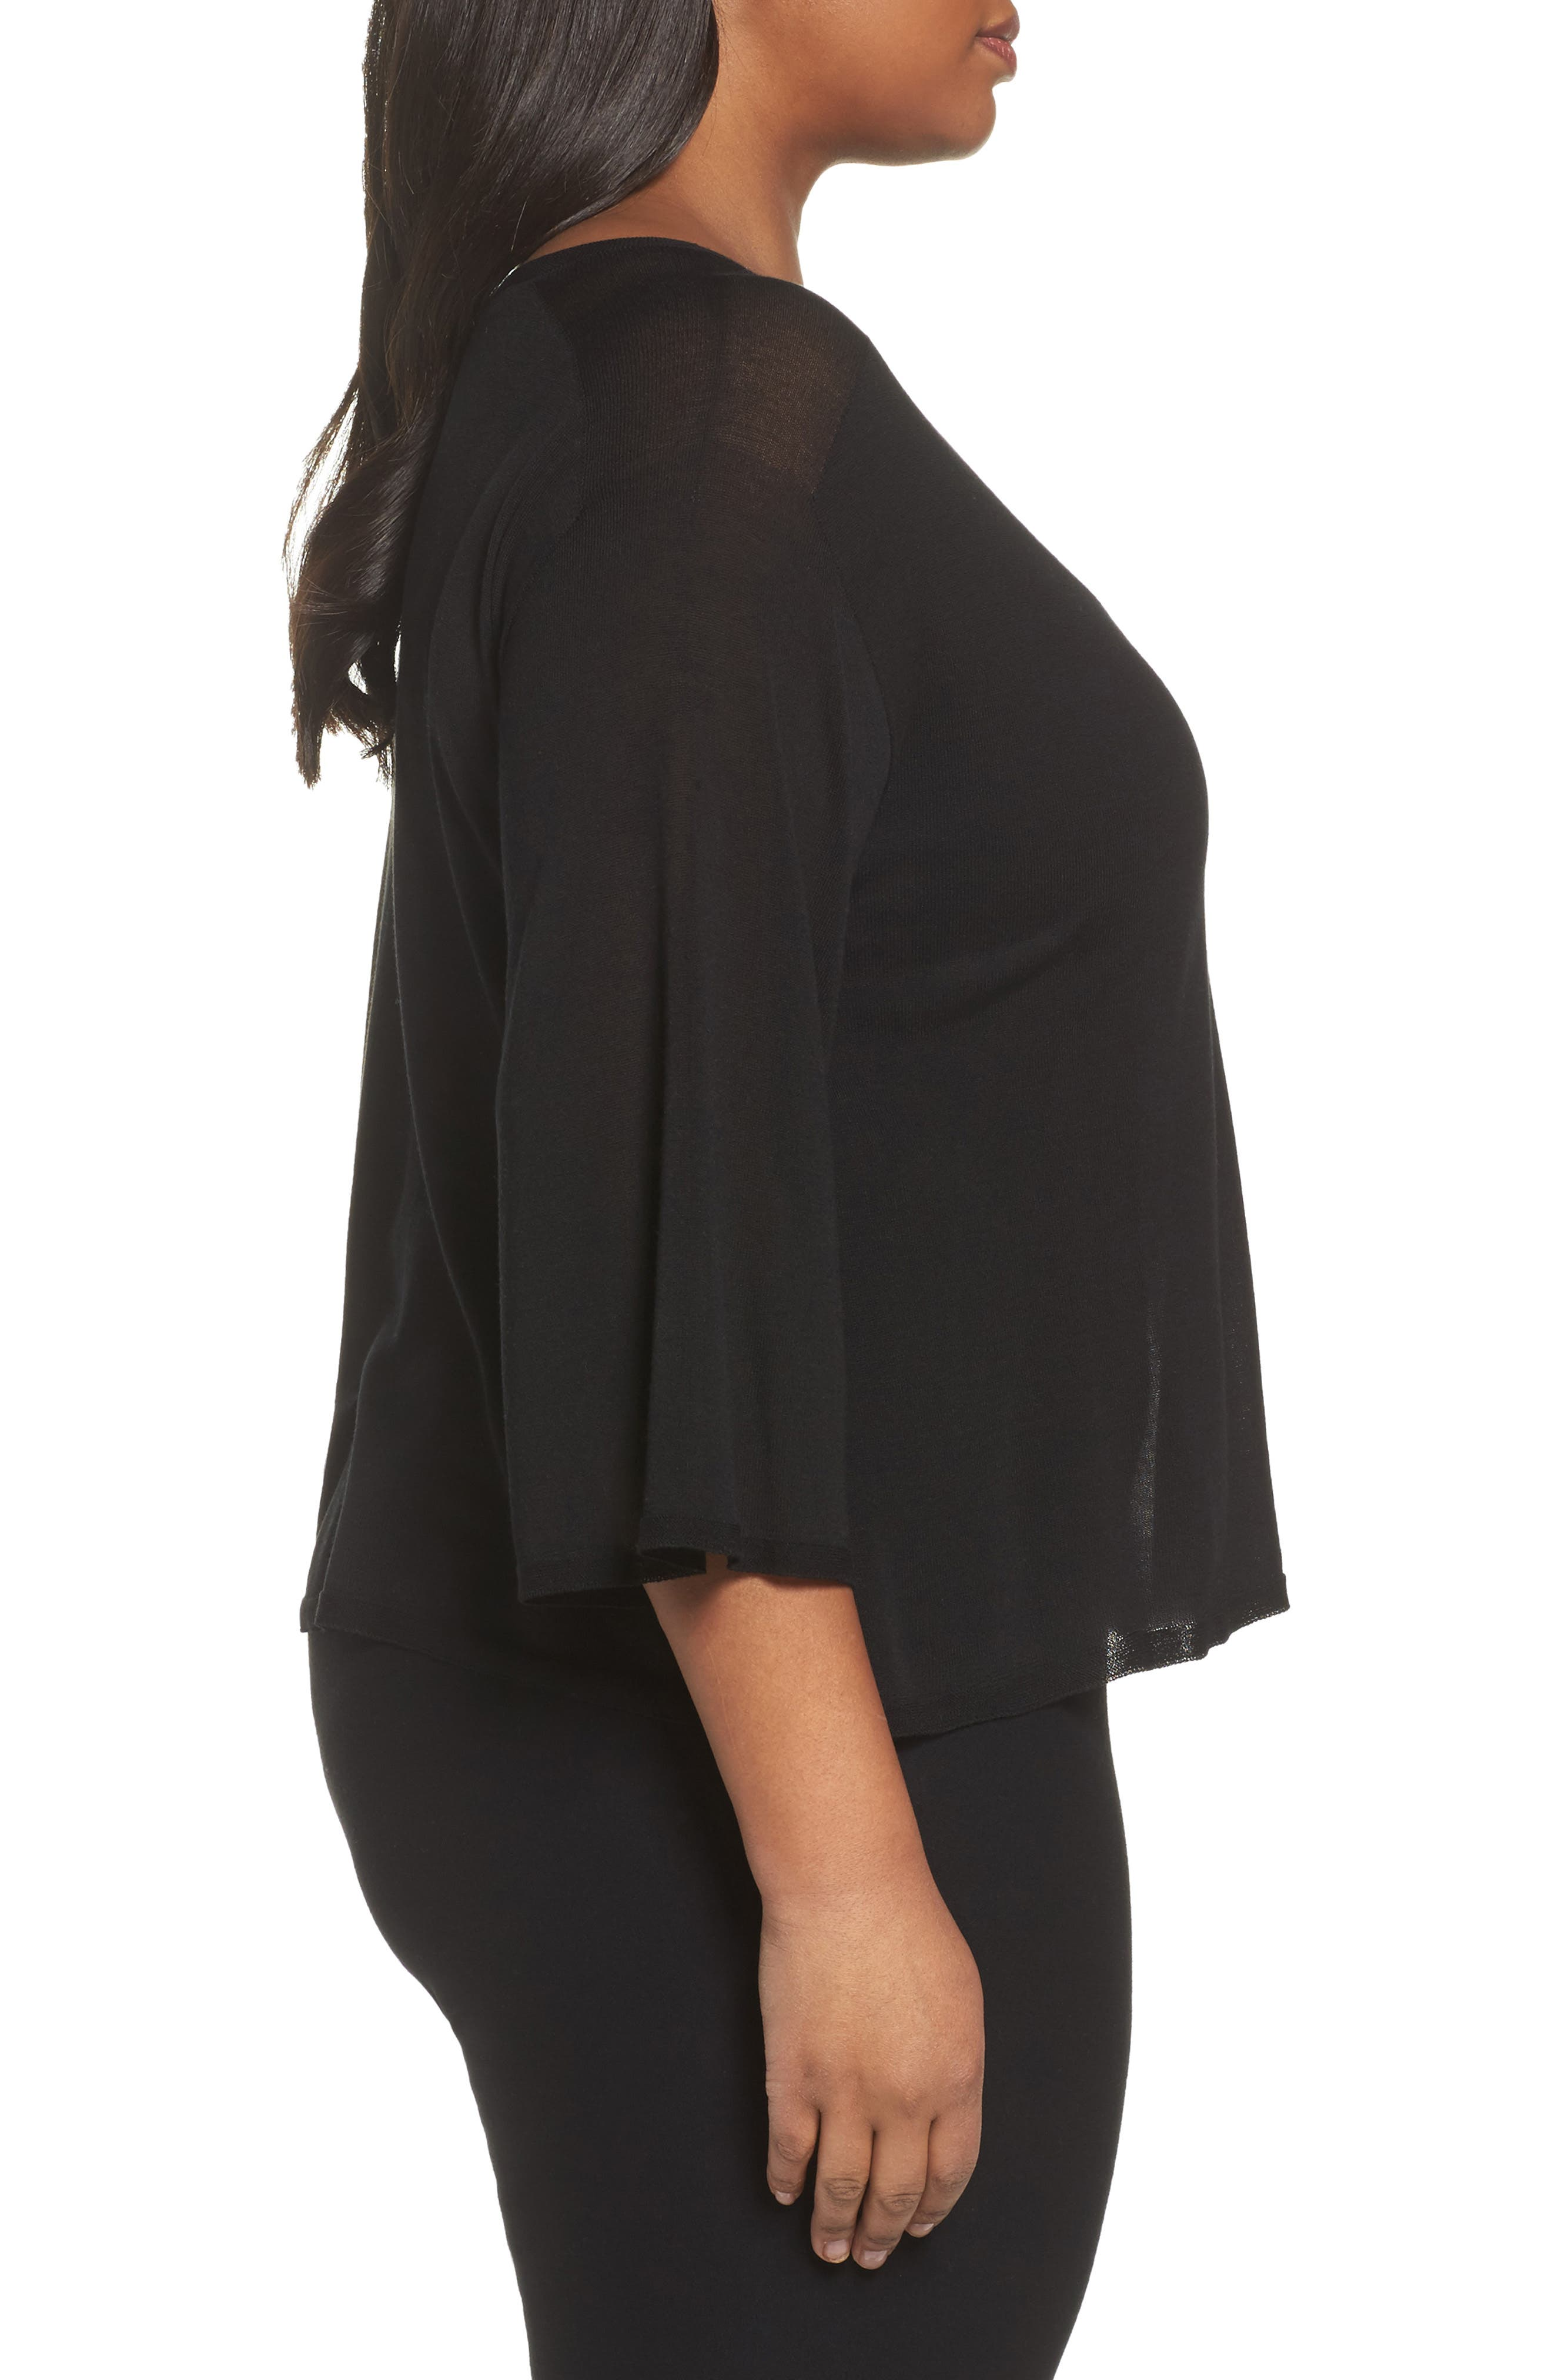 Tencel<sup>®</sup> Lyocell Lyocell Knit Sweater,                             Alternate thumbnail 3, color,                             Black